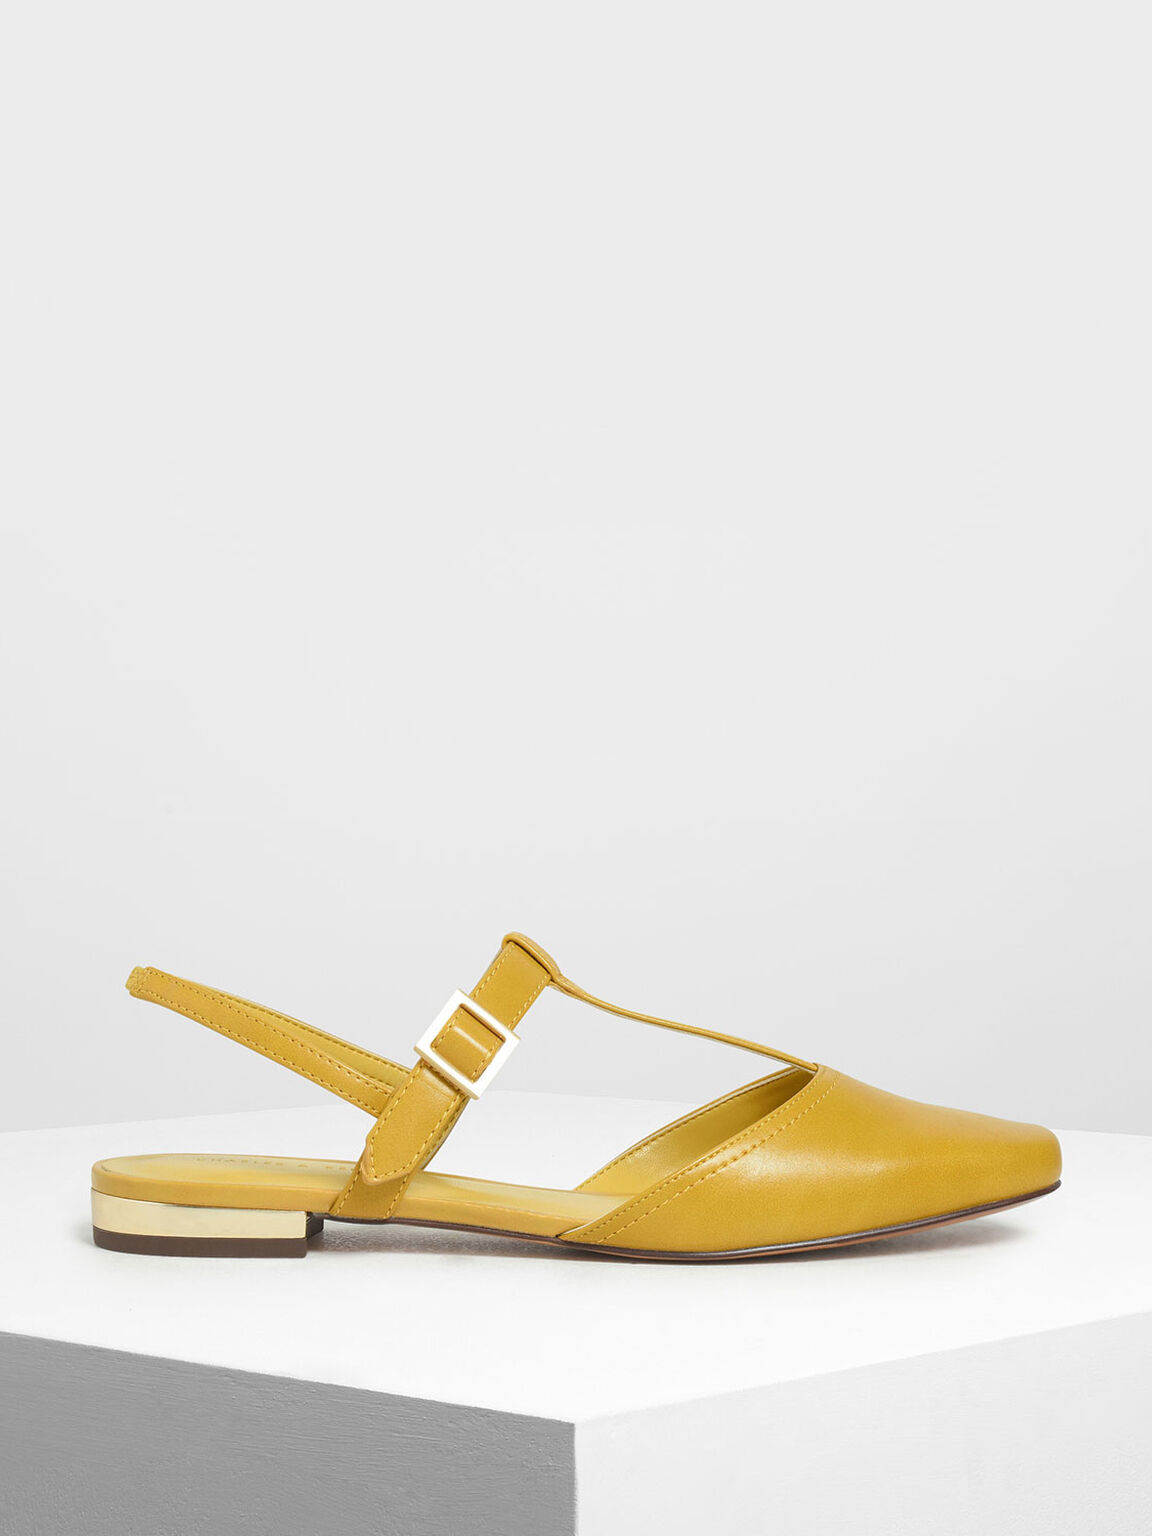 T- Bar Front Covered Sandals, Yellow, hi-res